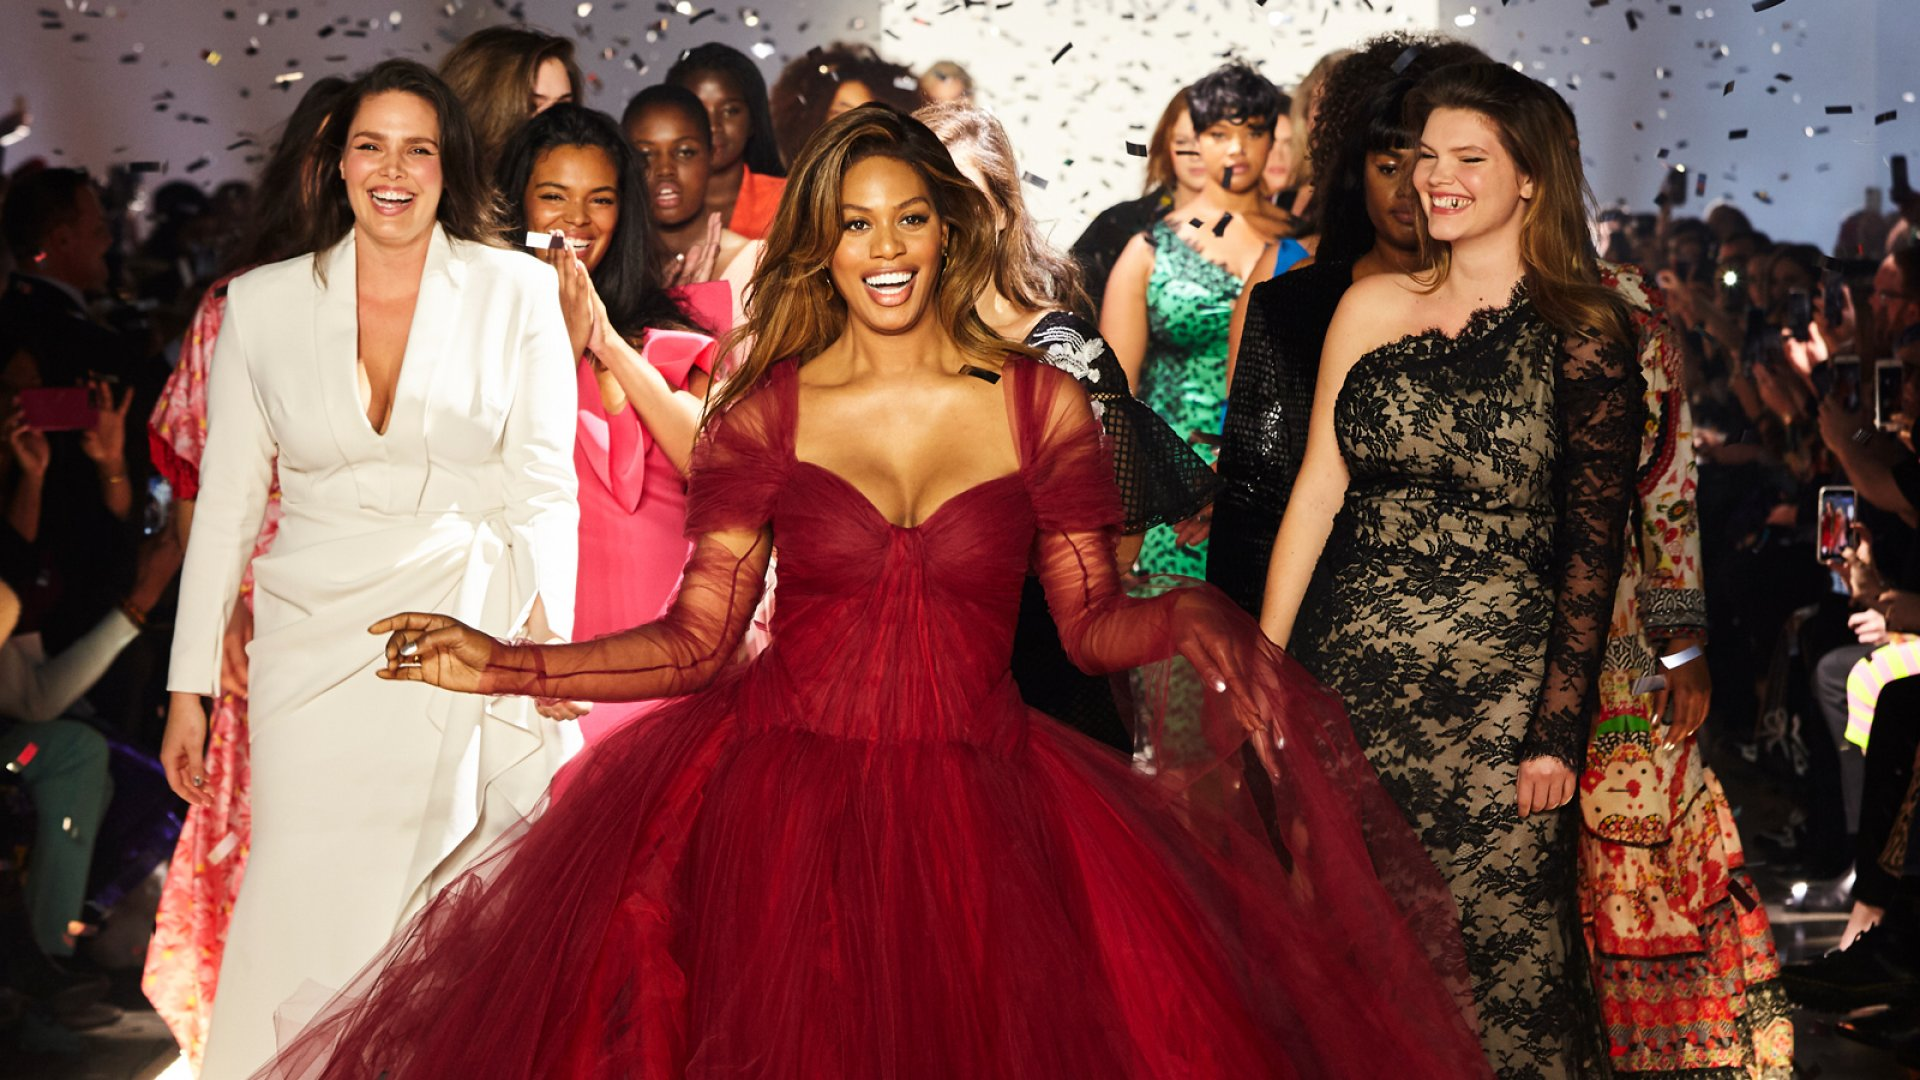 Laverne Cox walks the runway with other models during the 11 Honoré fashion show at New York Fashion Week.